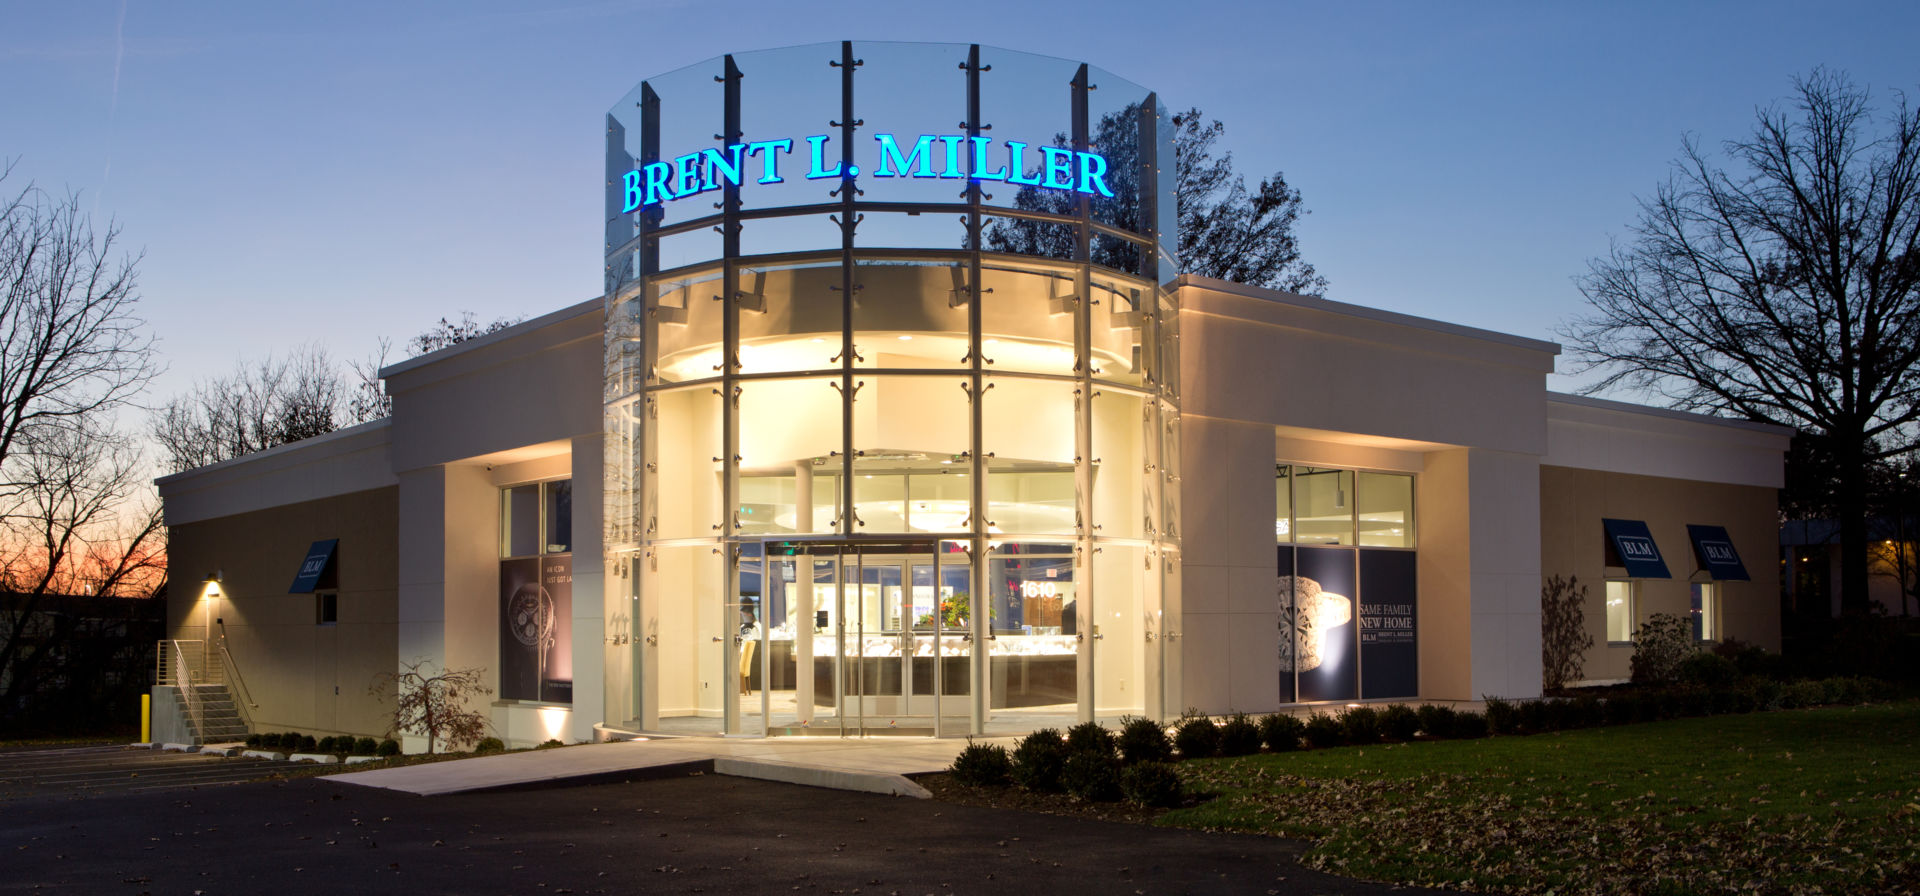 Brent L. Miller Jewelry Store